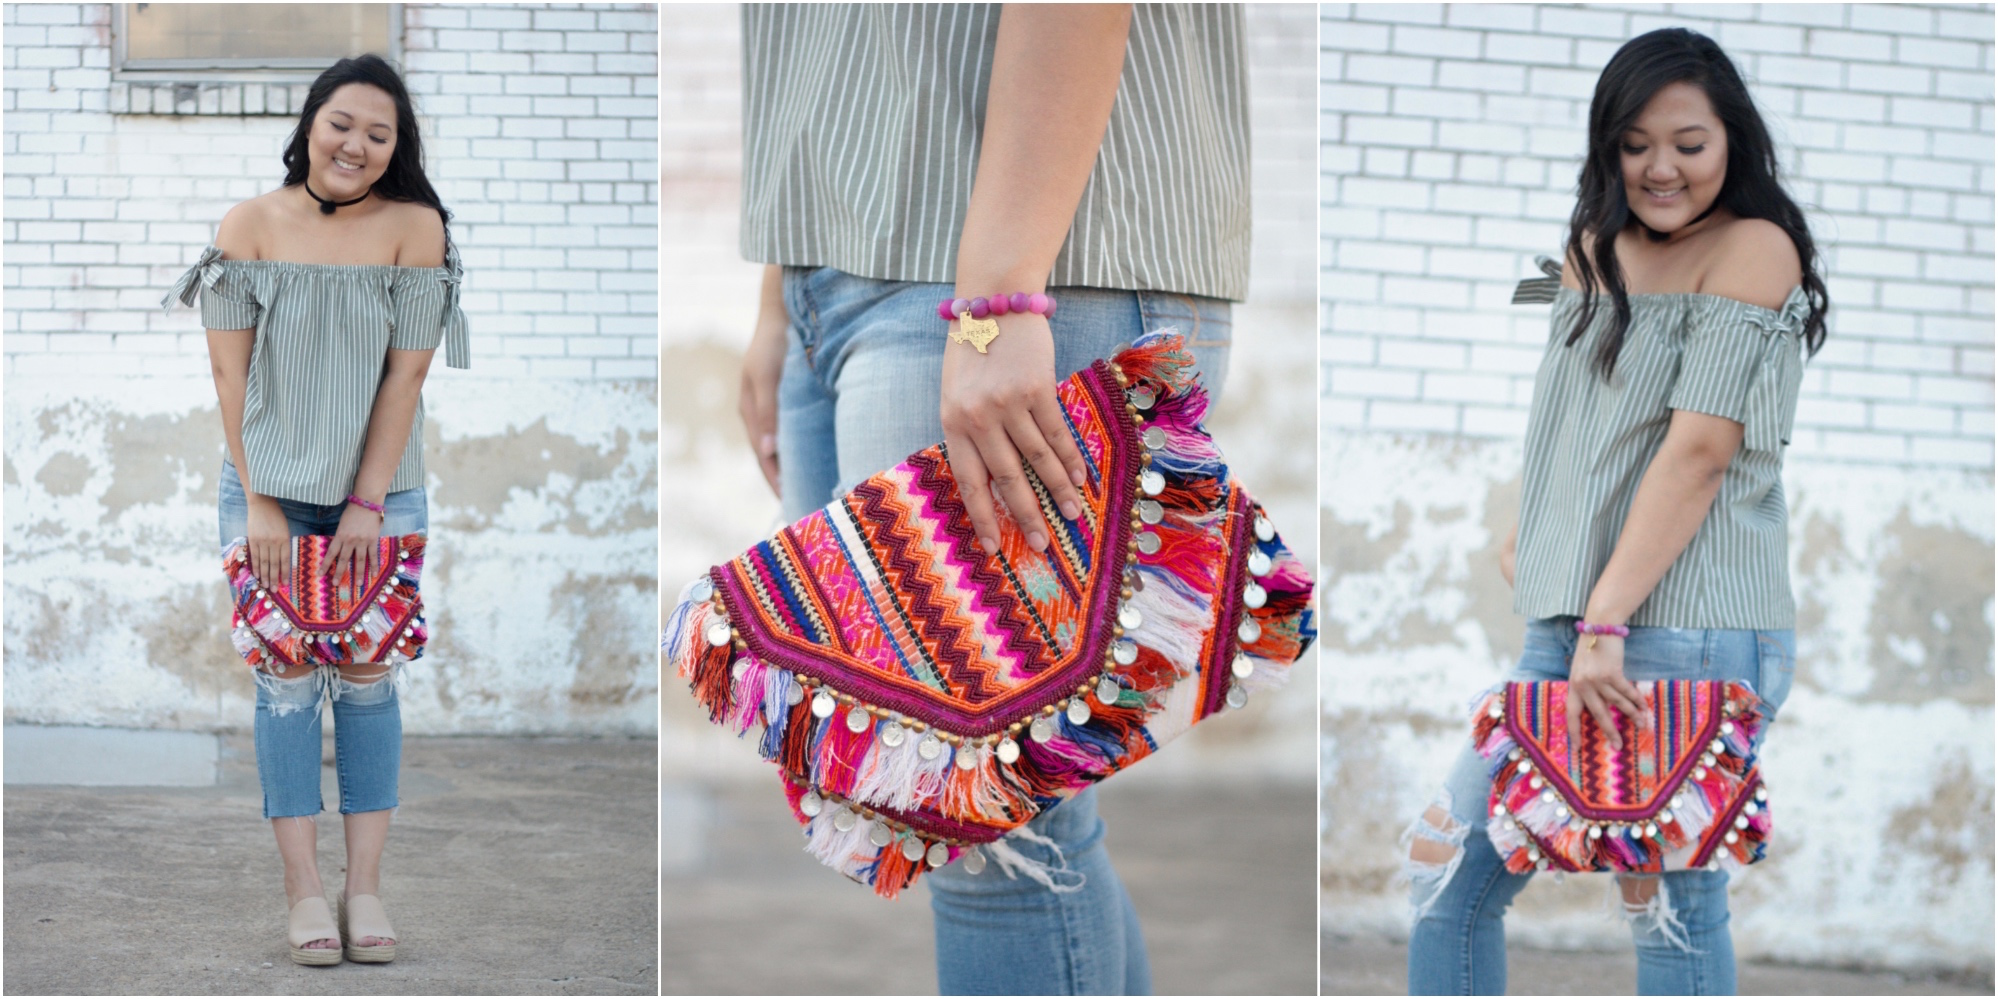 Spring Off the Shoulder Stripe Top and Fringe Clutch